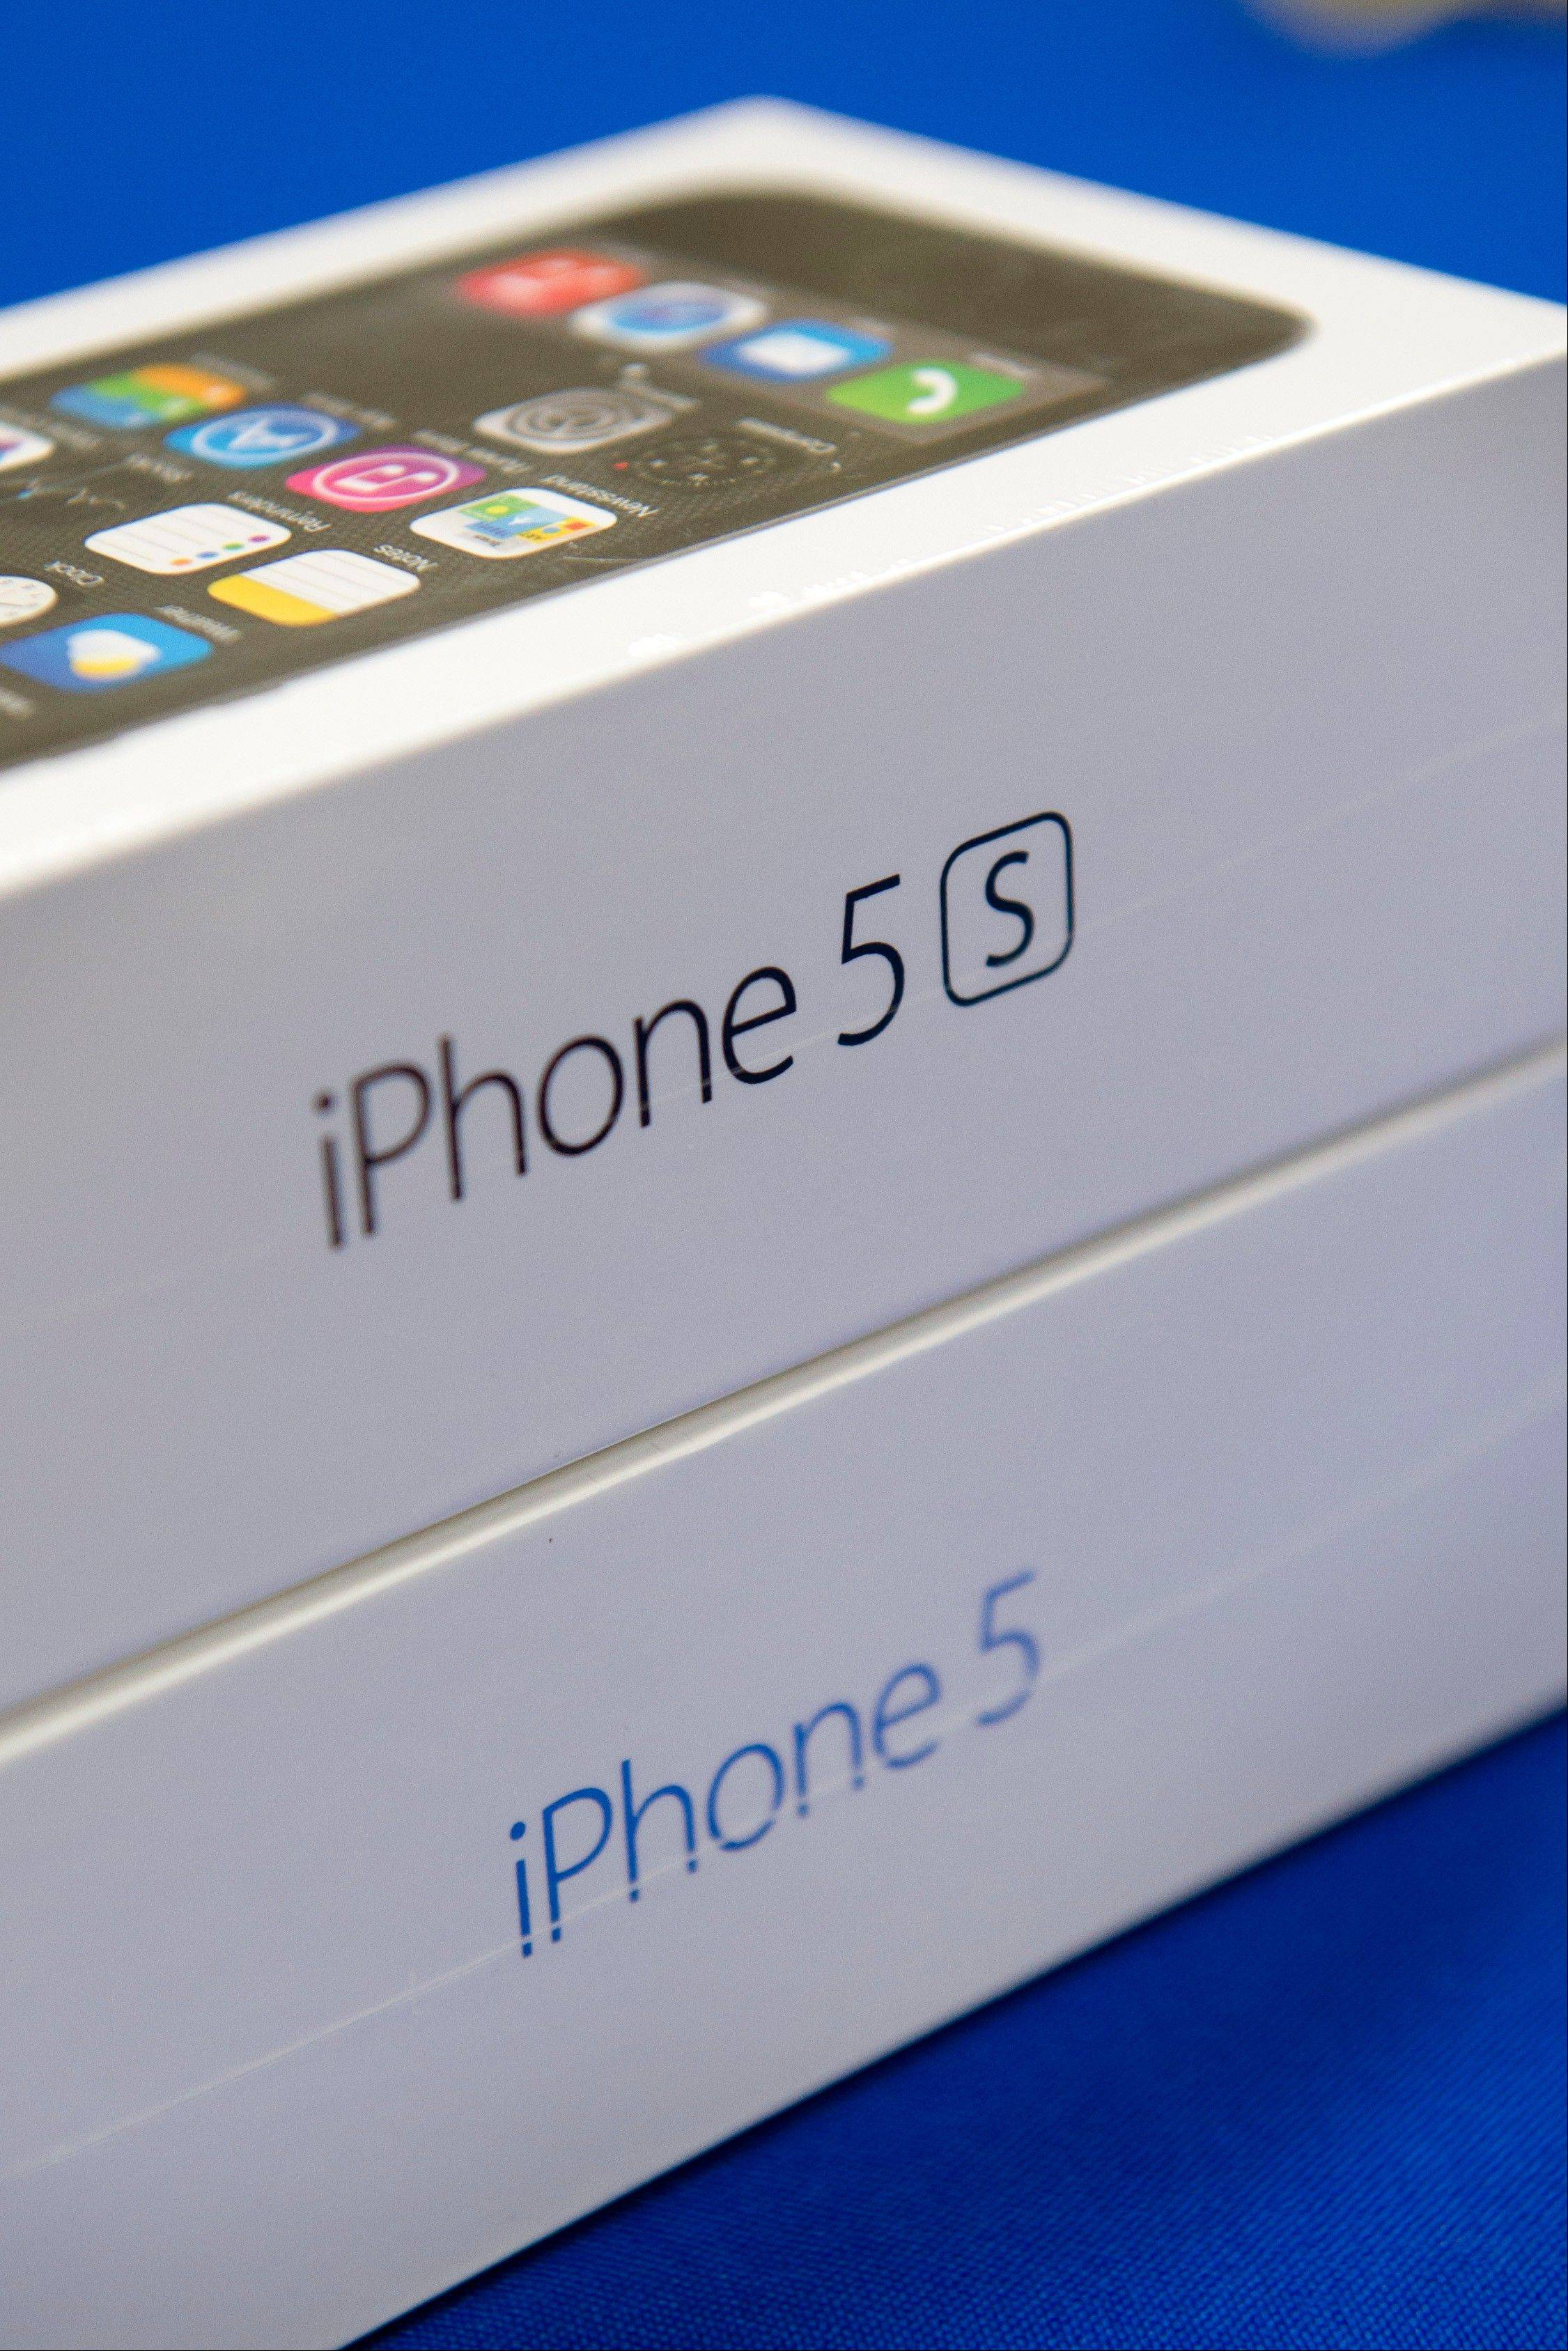 The new iPhone 5s sits atop the model that precedes it on Friday, the day of its release, at a Best Buy in Atlanta, Friday.